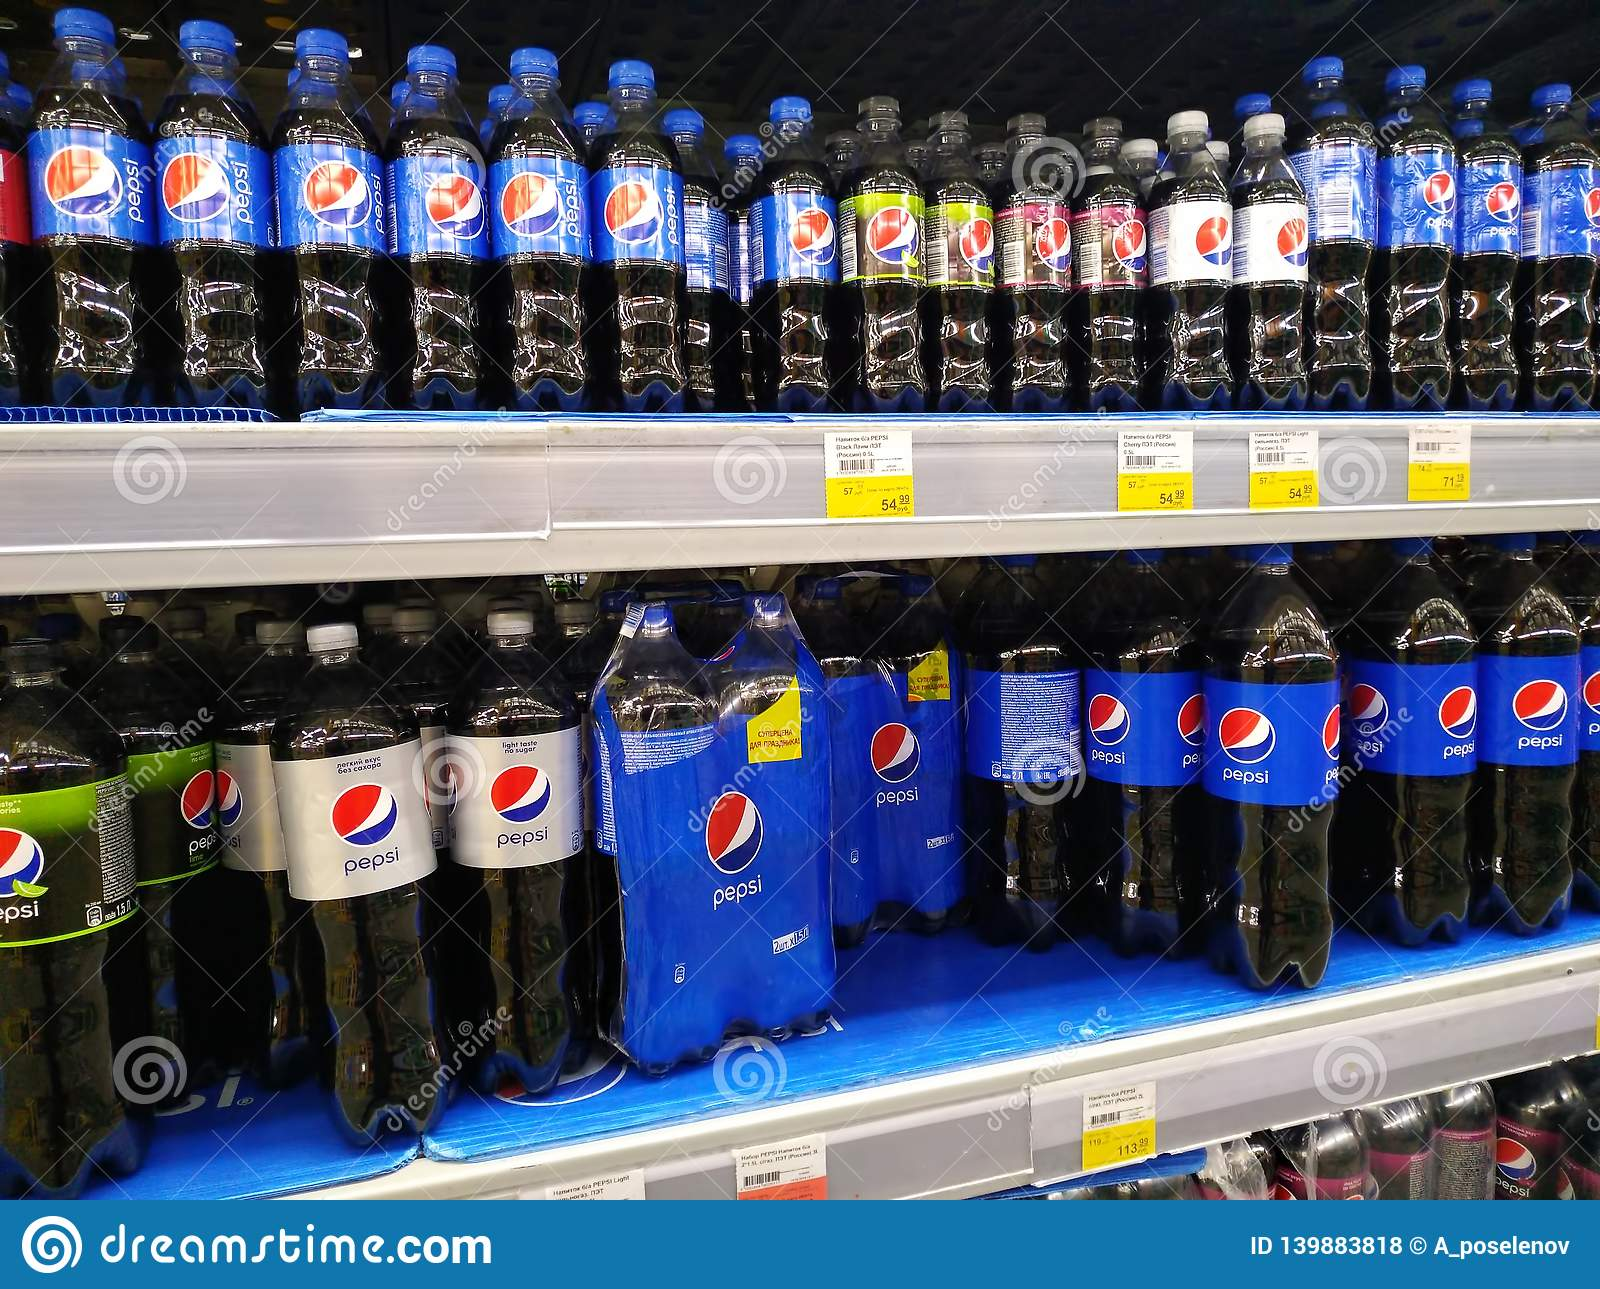 Plastic Bottles Of Pepsi Cola On The Shelves Are Sold In A